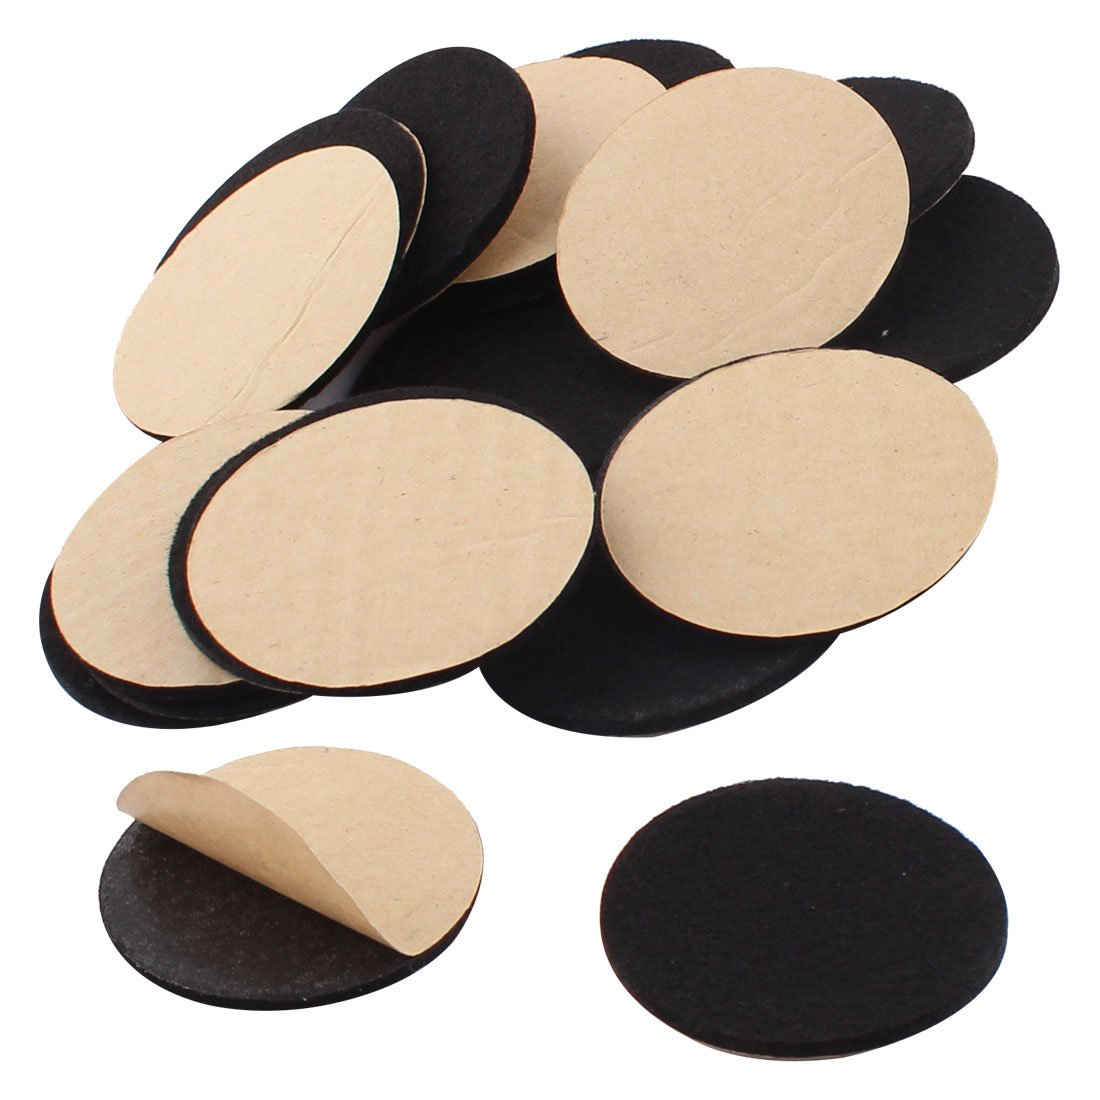 uxcell Household Self Stick Table Chair Floor Protector Furniture Felt Pads Mats 50mm 20pcs Black a16050600ux0724